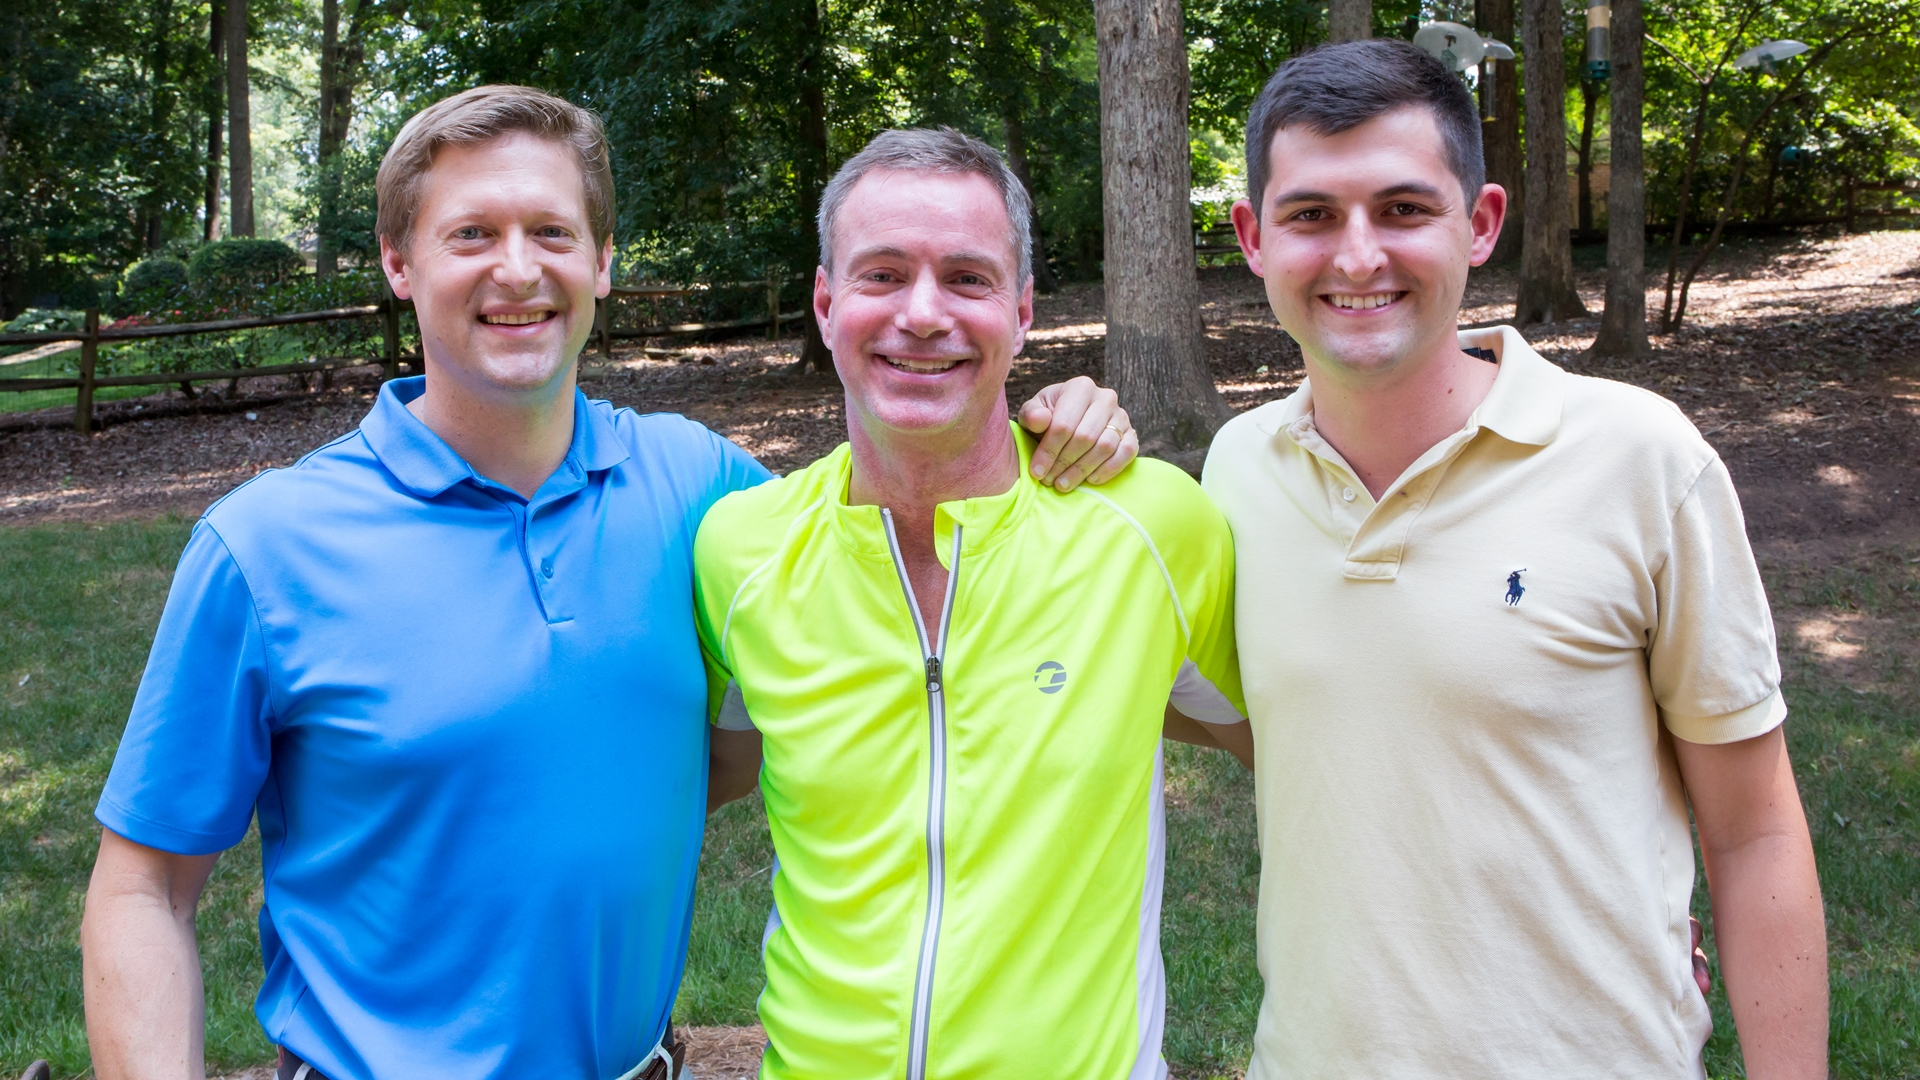 From left: Matt McGirt, MD, neurosurgeon, Dean Otto, Will Huffman, driver. The three men have become close friends and are all running a half marathon together on the one-year anniversary of Otto's accident.